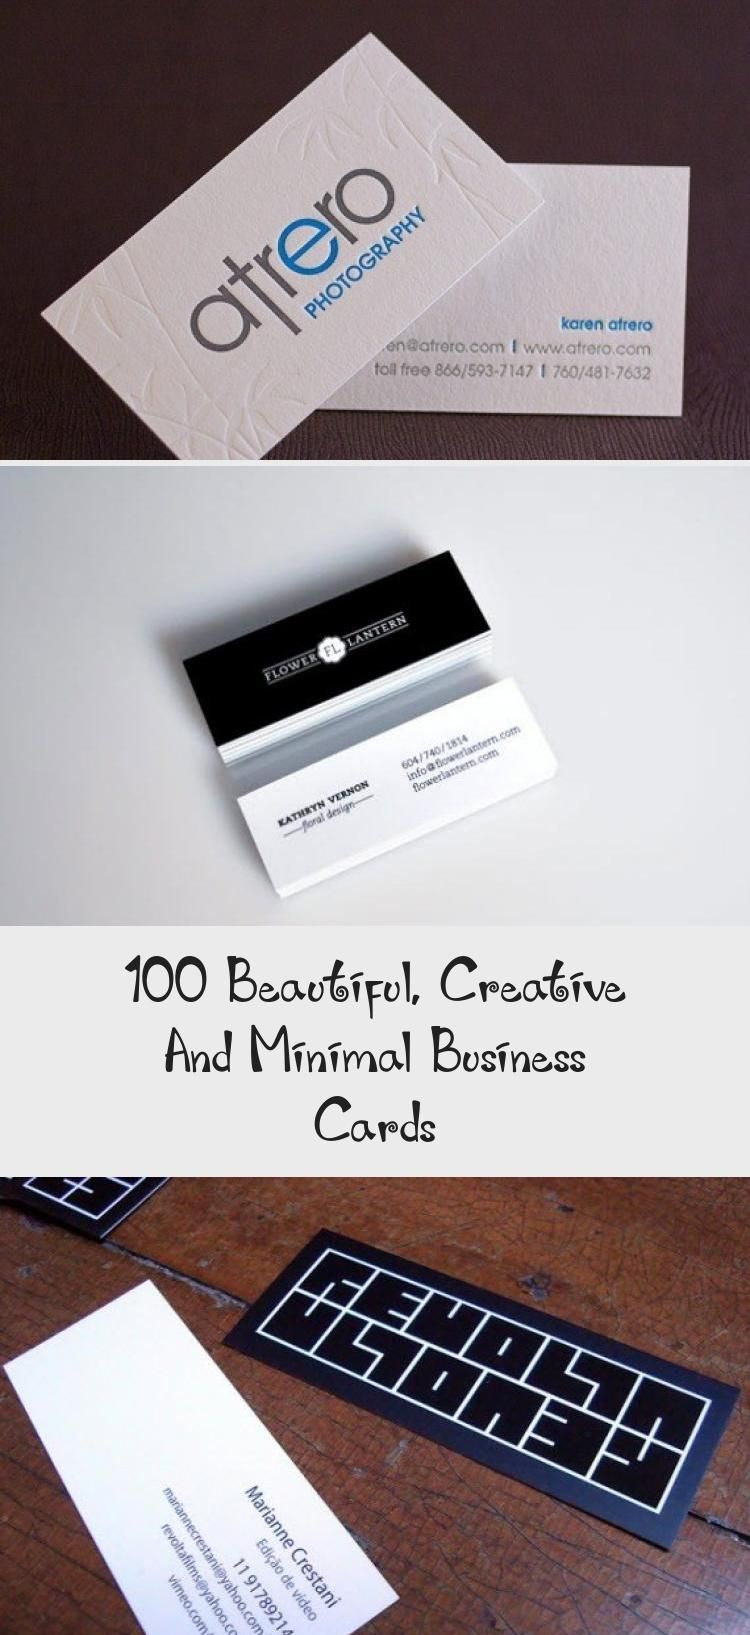 100 Beautiful Creative And Minimal Business Cards In 2020